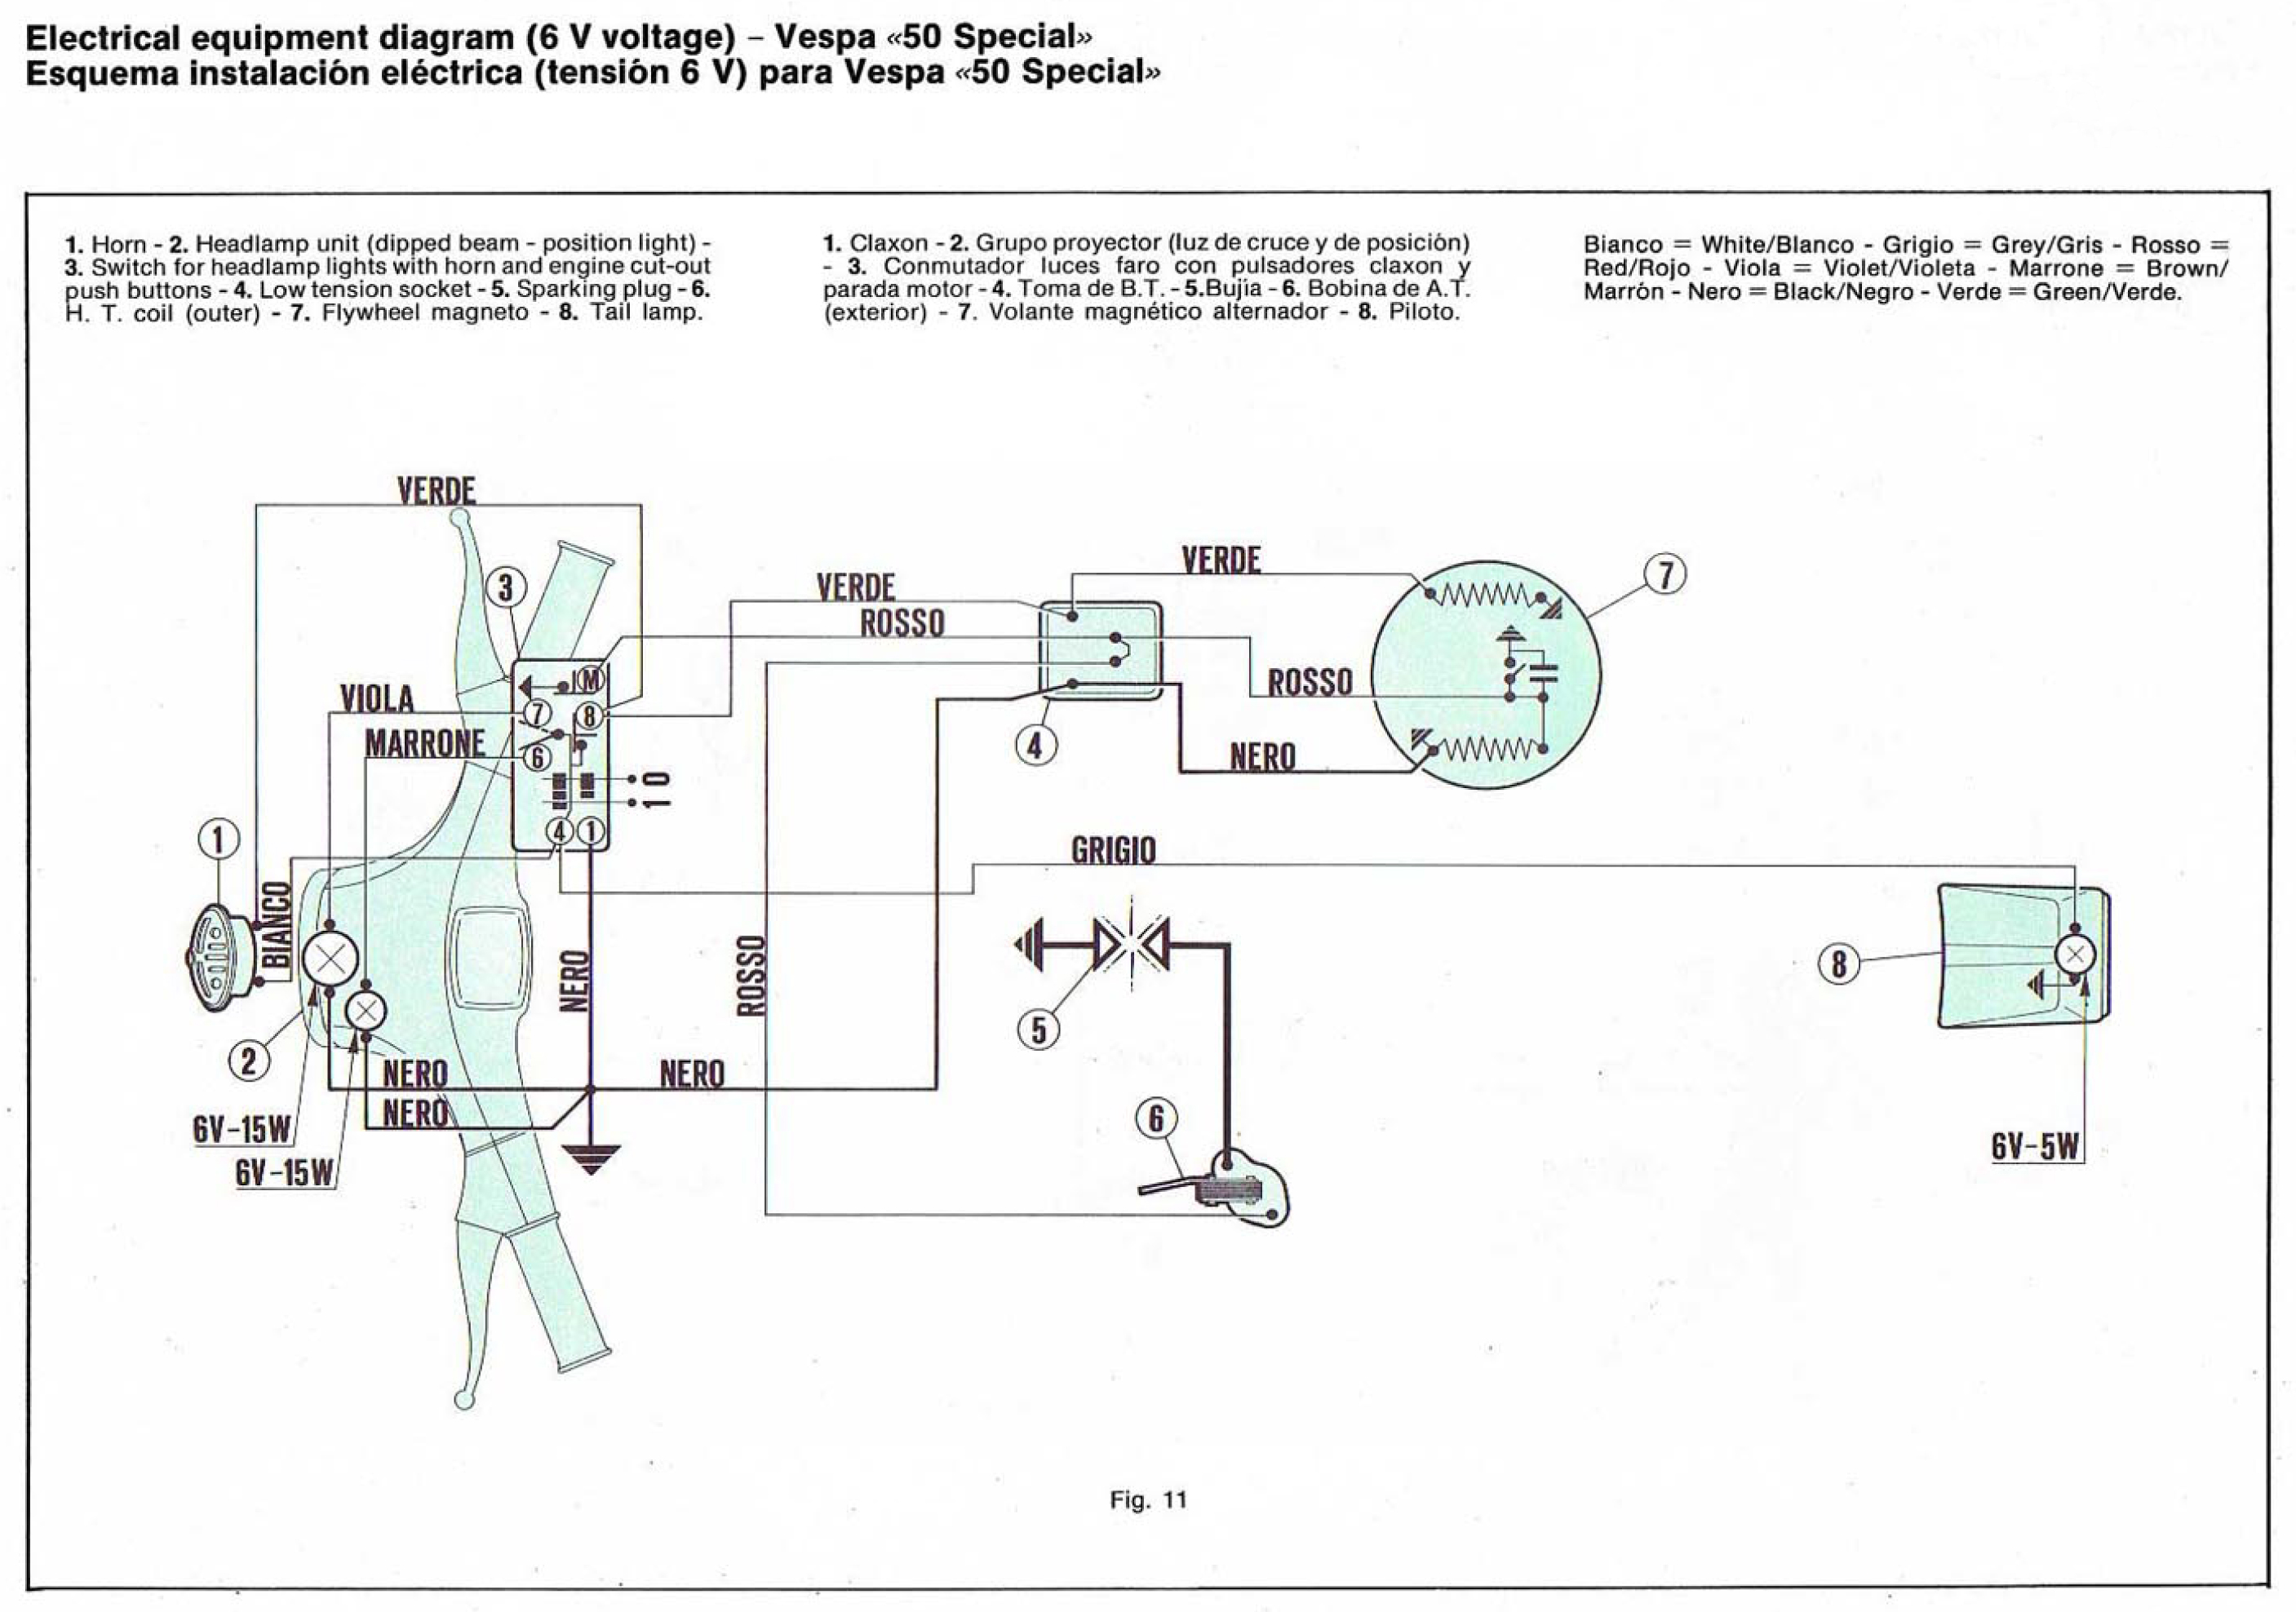 Wiring diagram vespa vl1 electrical work wiring diagram wiring diagrams wiring diagrams rh kabel schute de vespa scooter wiring diagram light switch wiring diagram cheapraybanclubmaster Choice Image